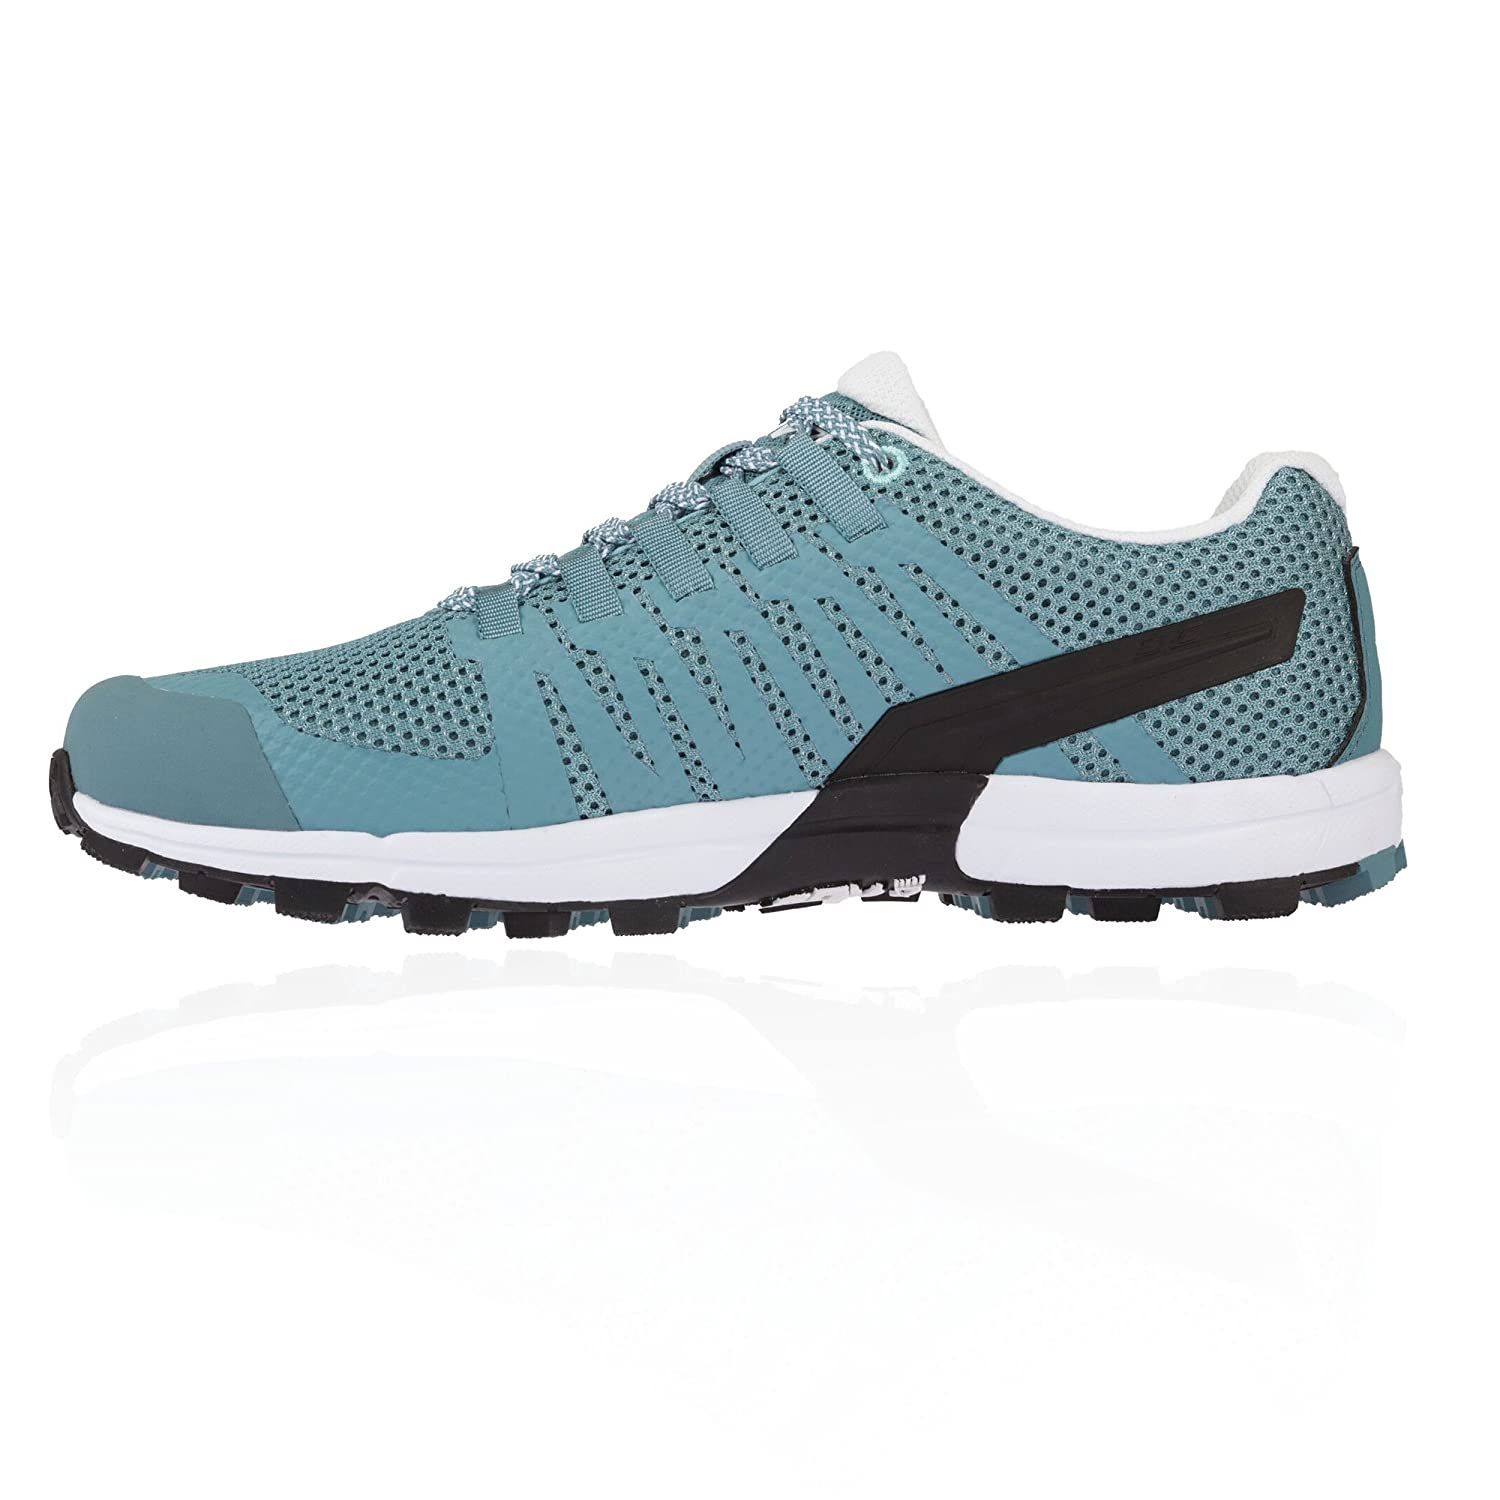 Inov-8 Women's B079Q4BKQ6 Roclite 290 Trail Runner B079Q4BKQ6 Women's 6.5 W US|Blue Grey / White 91fd55